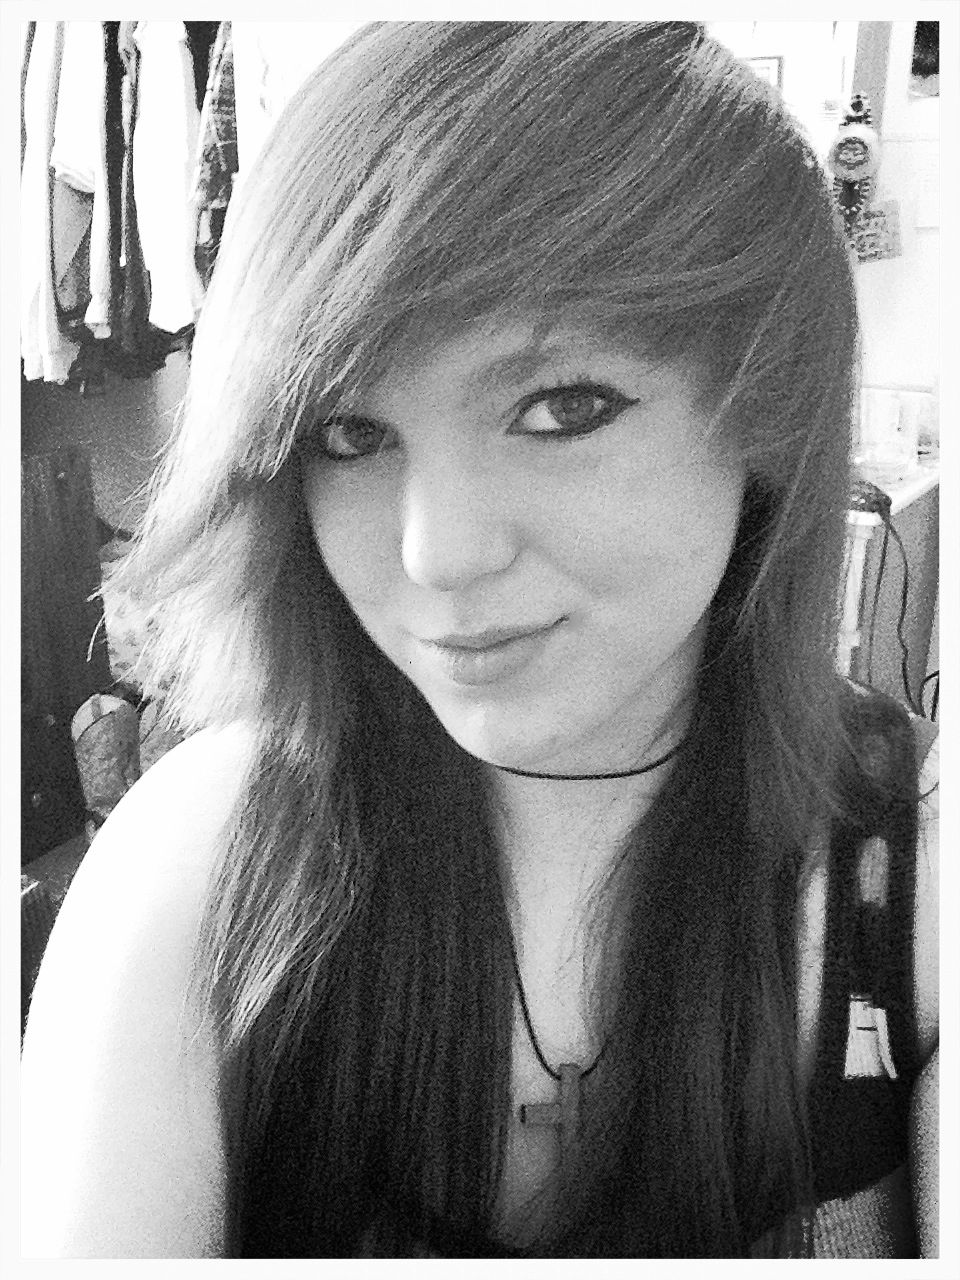 Old photo,new hair(: